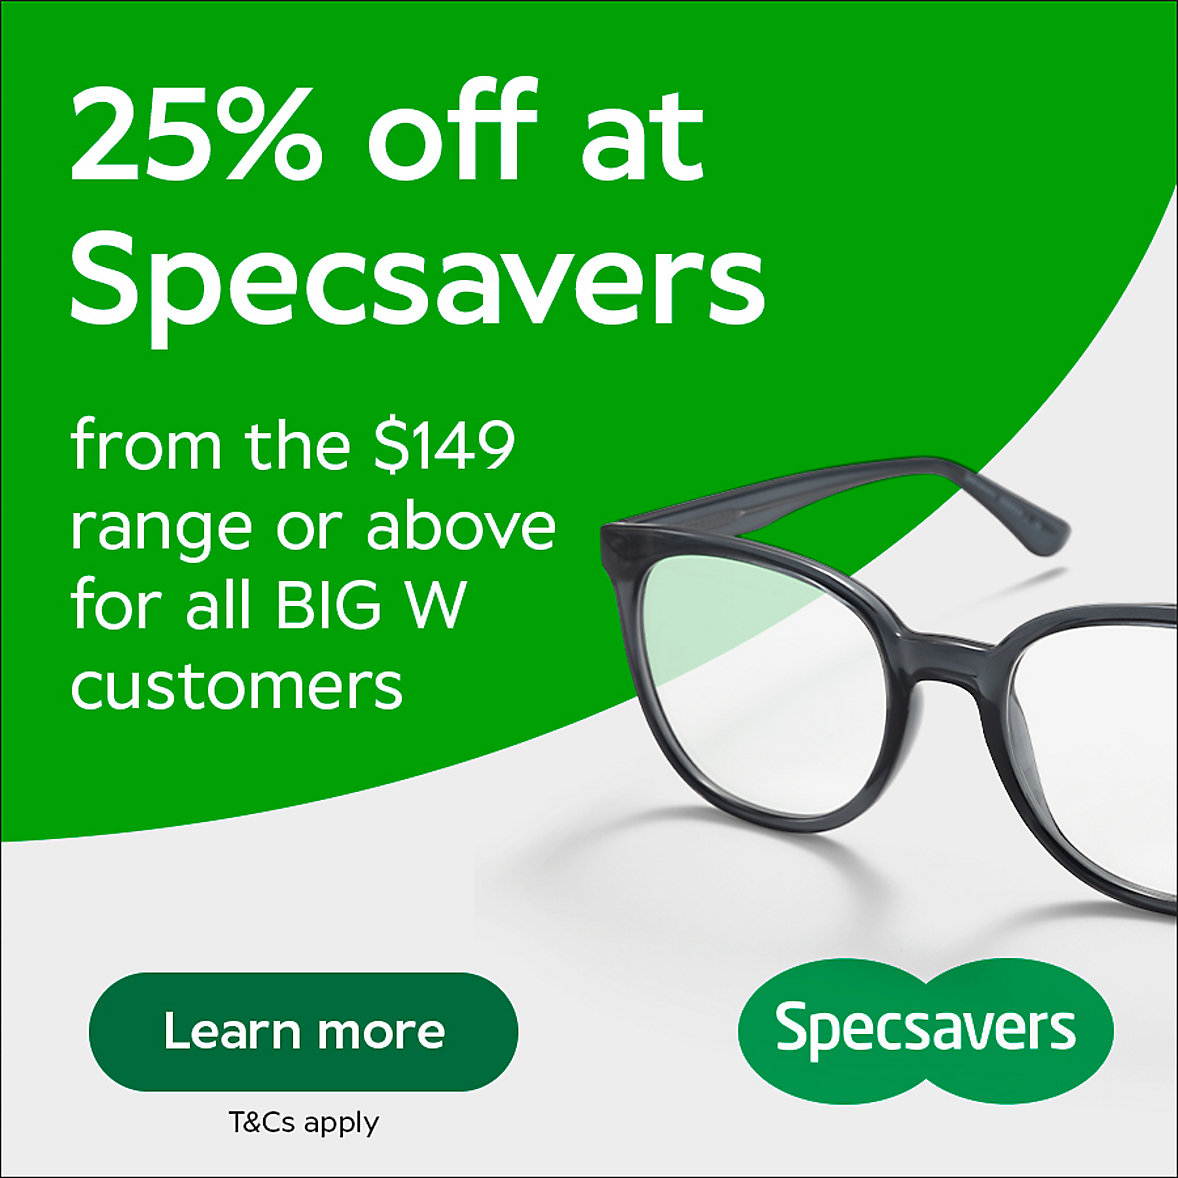 25% off Specsavers